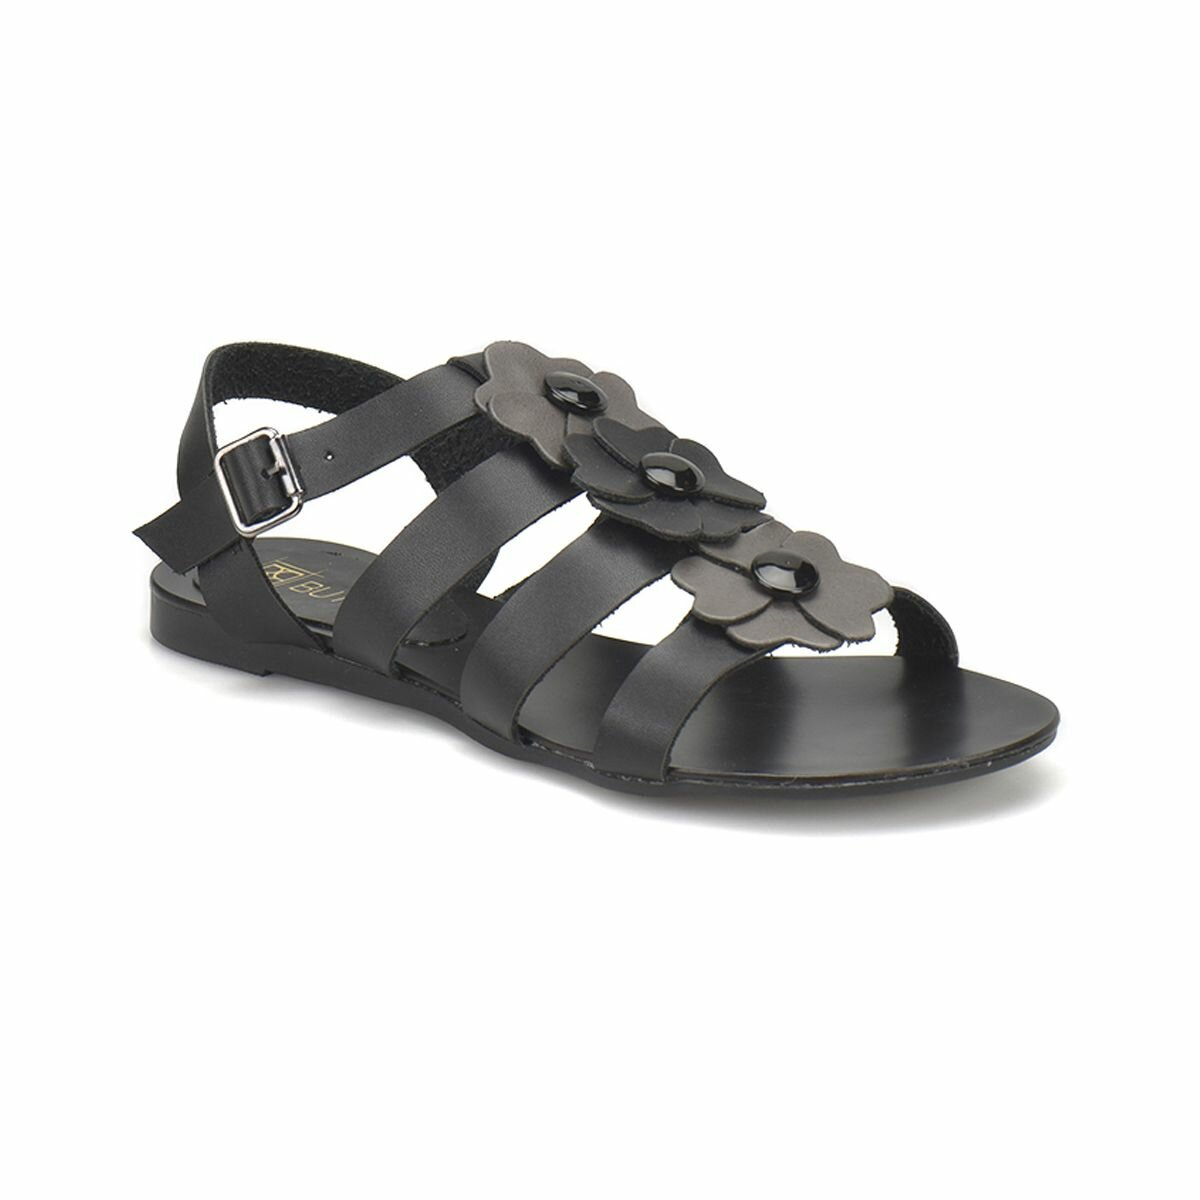 FLO 18S-183 Black Women Shoes BUTIGO